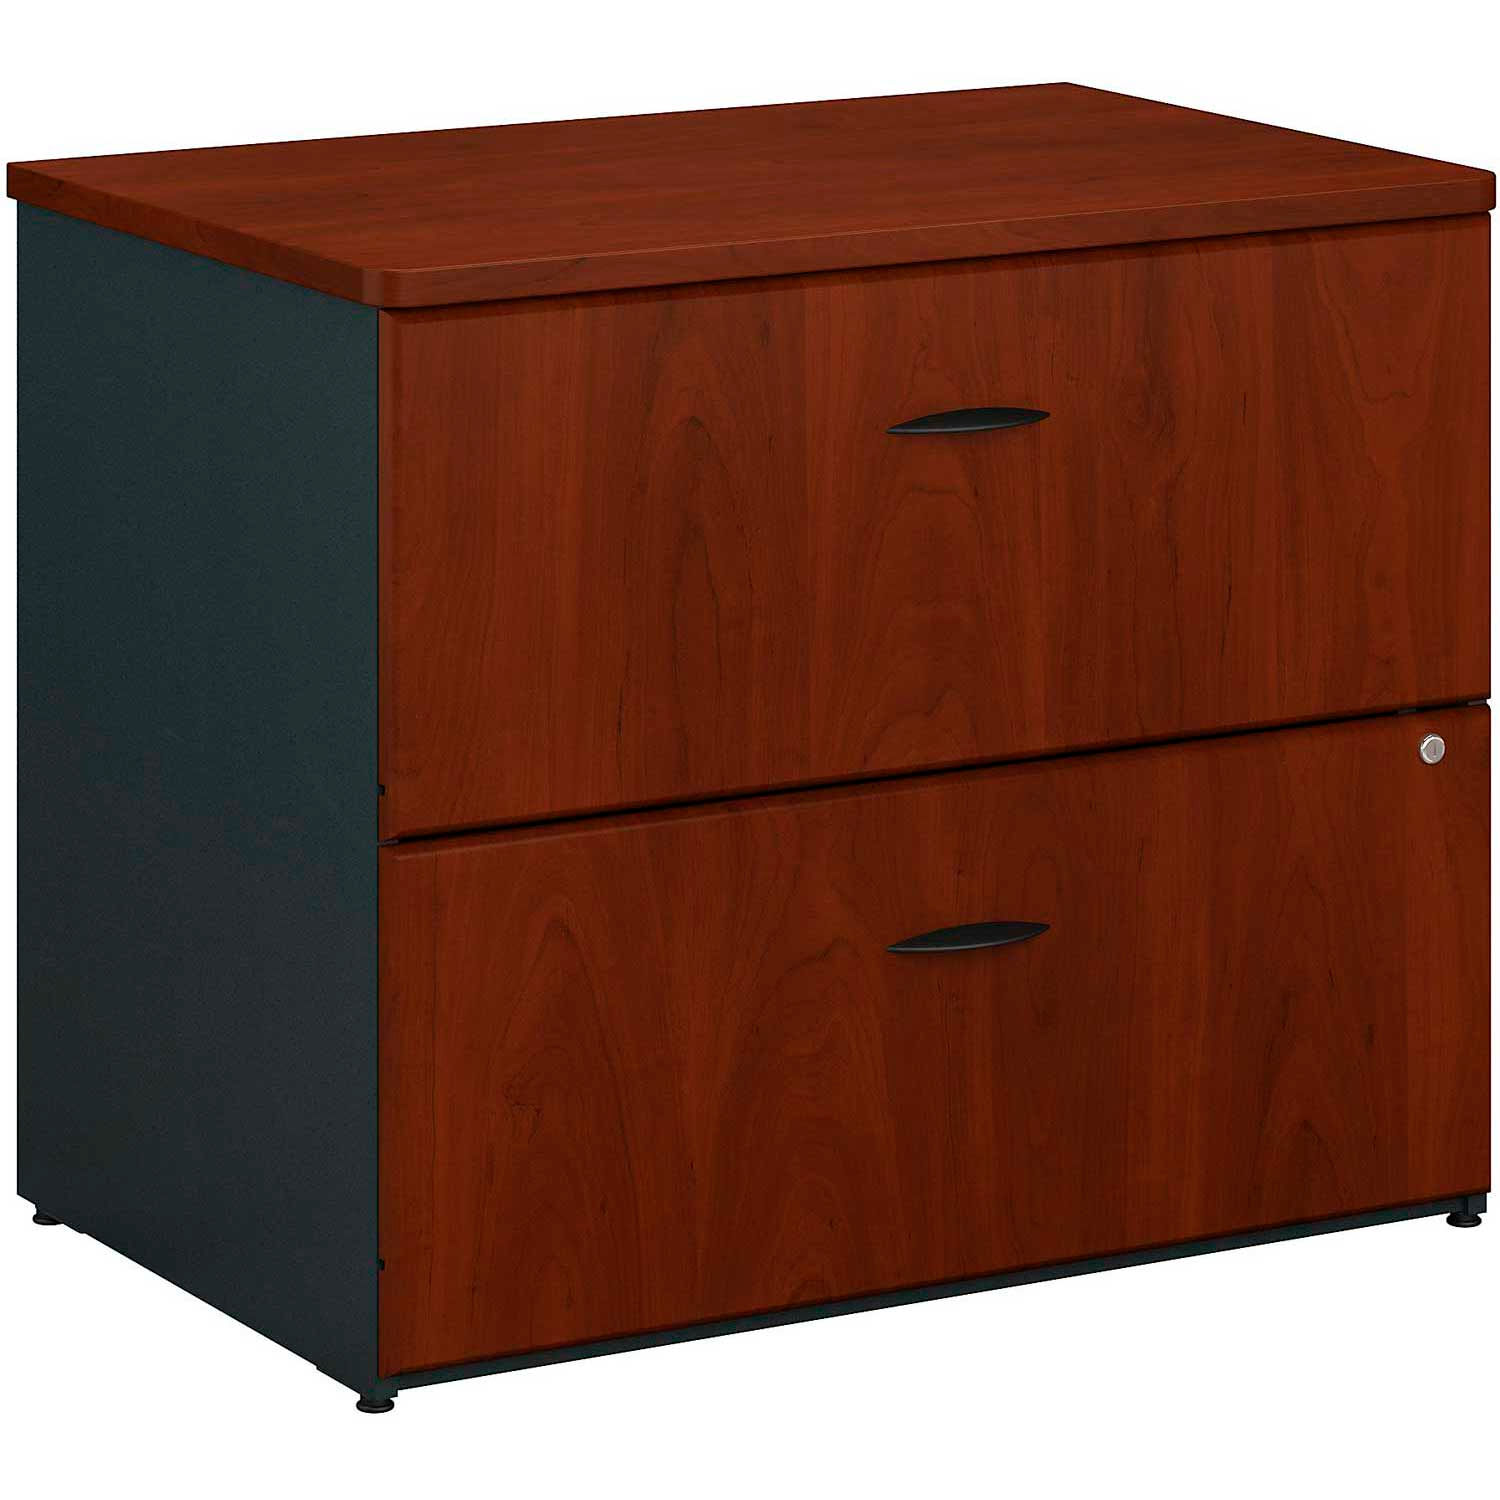 Desks Steel Office Collections Bush Furniture 2 Drawer Lateral File Cabinet Assembled Hansen Cherry Series A B474061 Globalindustrial Ca